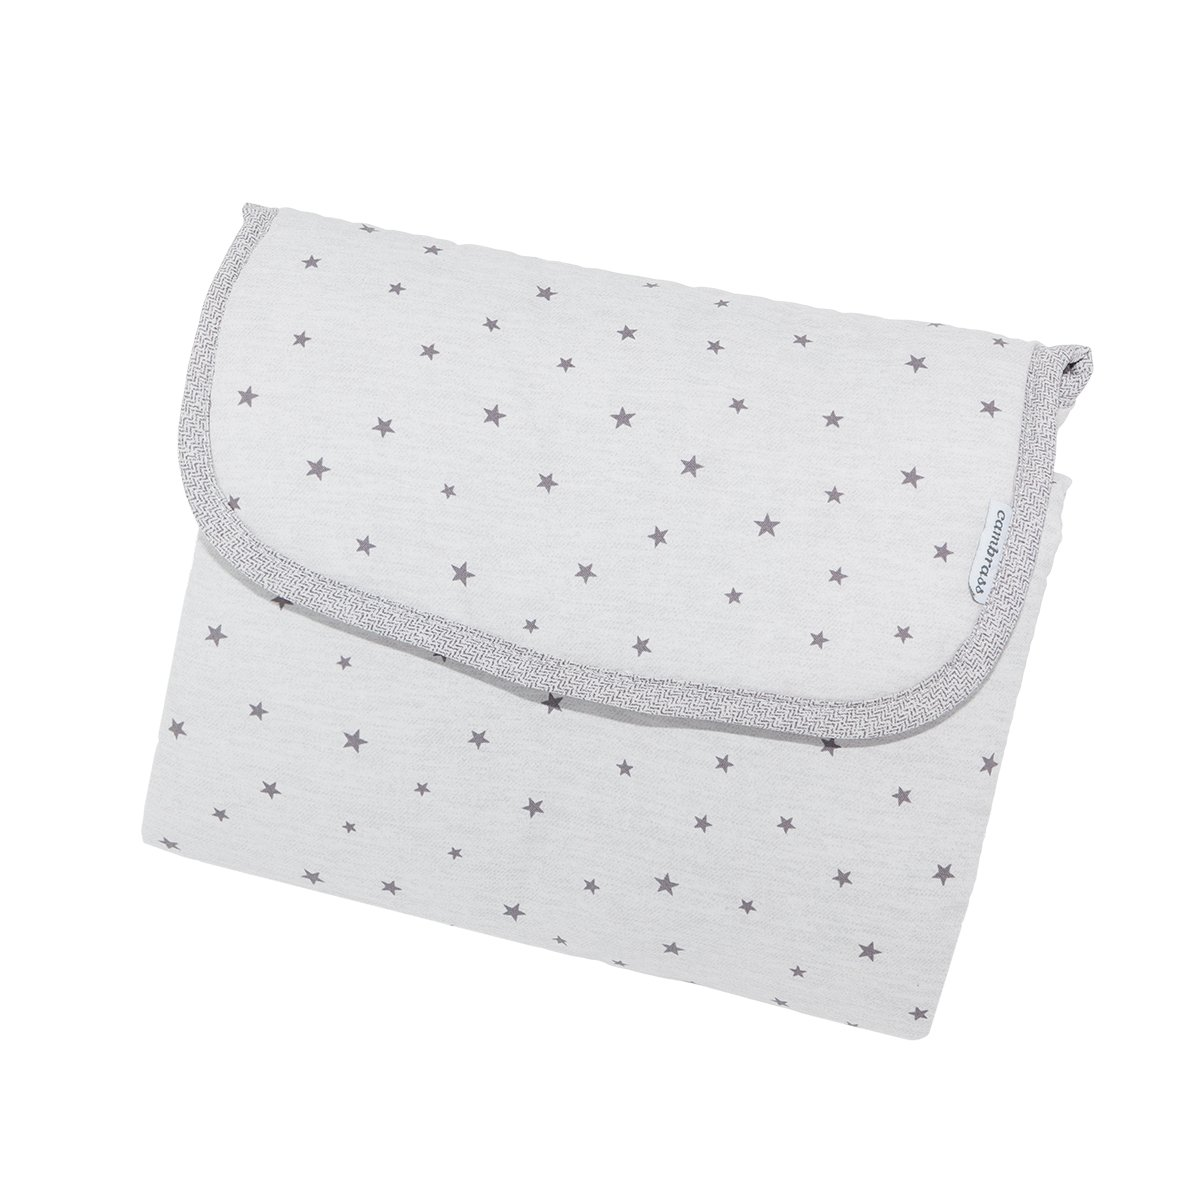 Cambrass Travel Nappy Changer (64 x 42 cm, Stela Grey) 37355.0